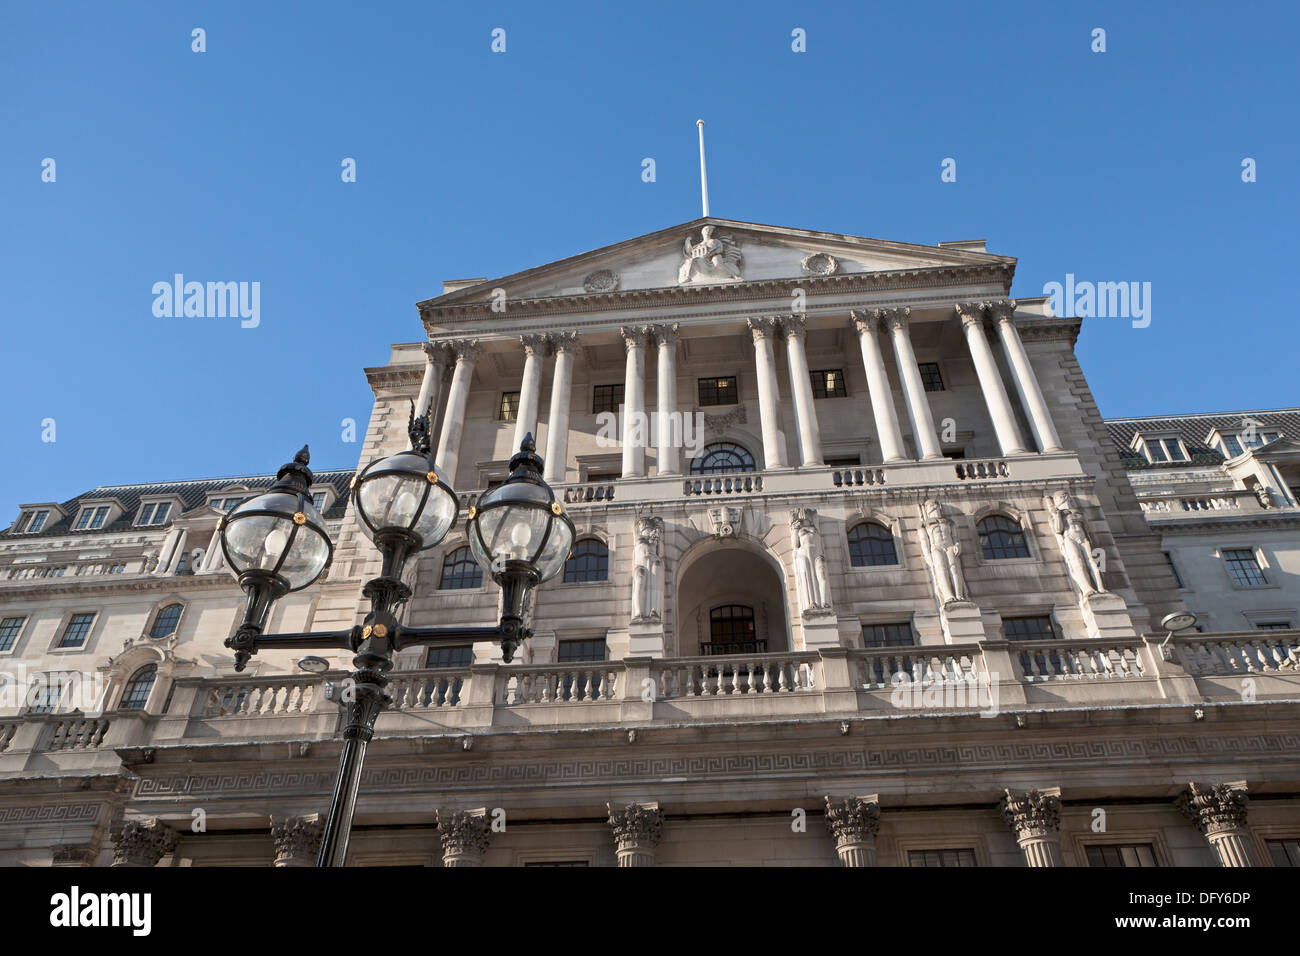 The Bank of England building in the City of London, England - Stock Image